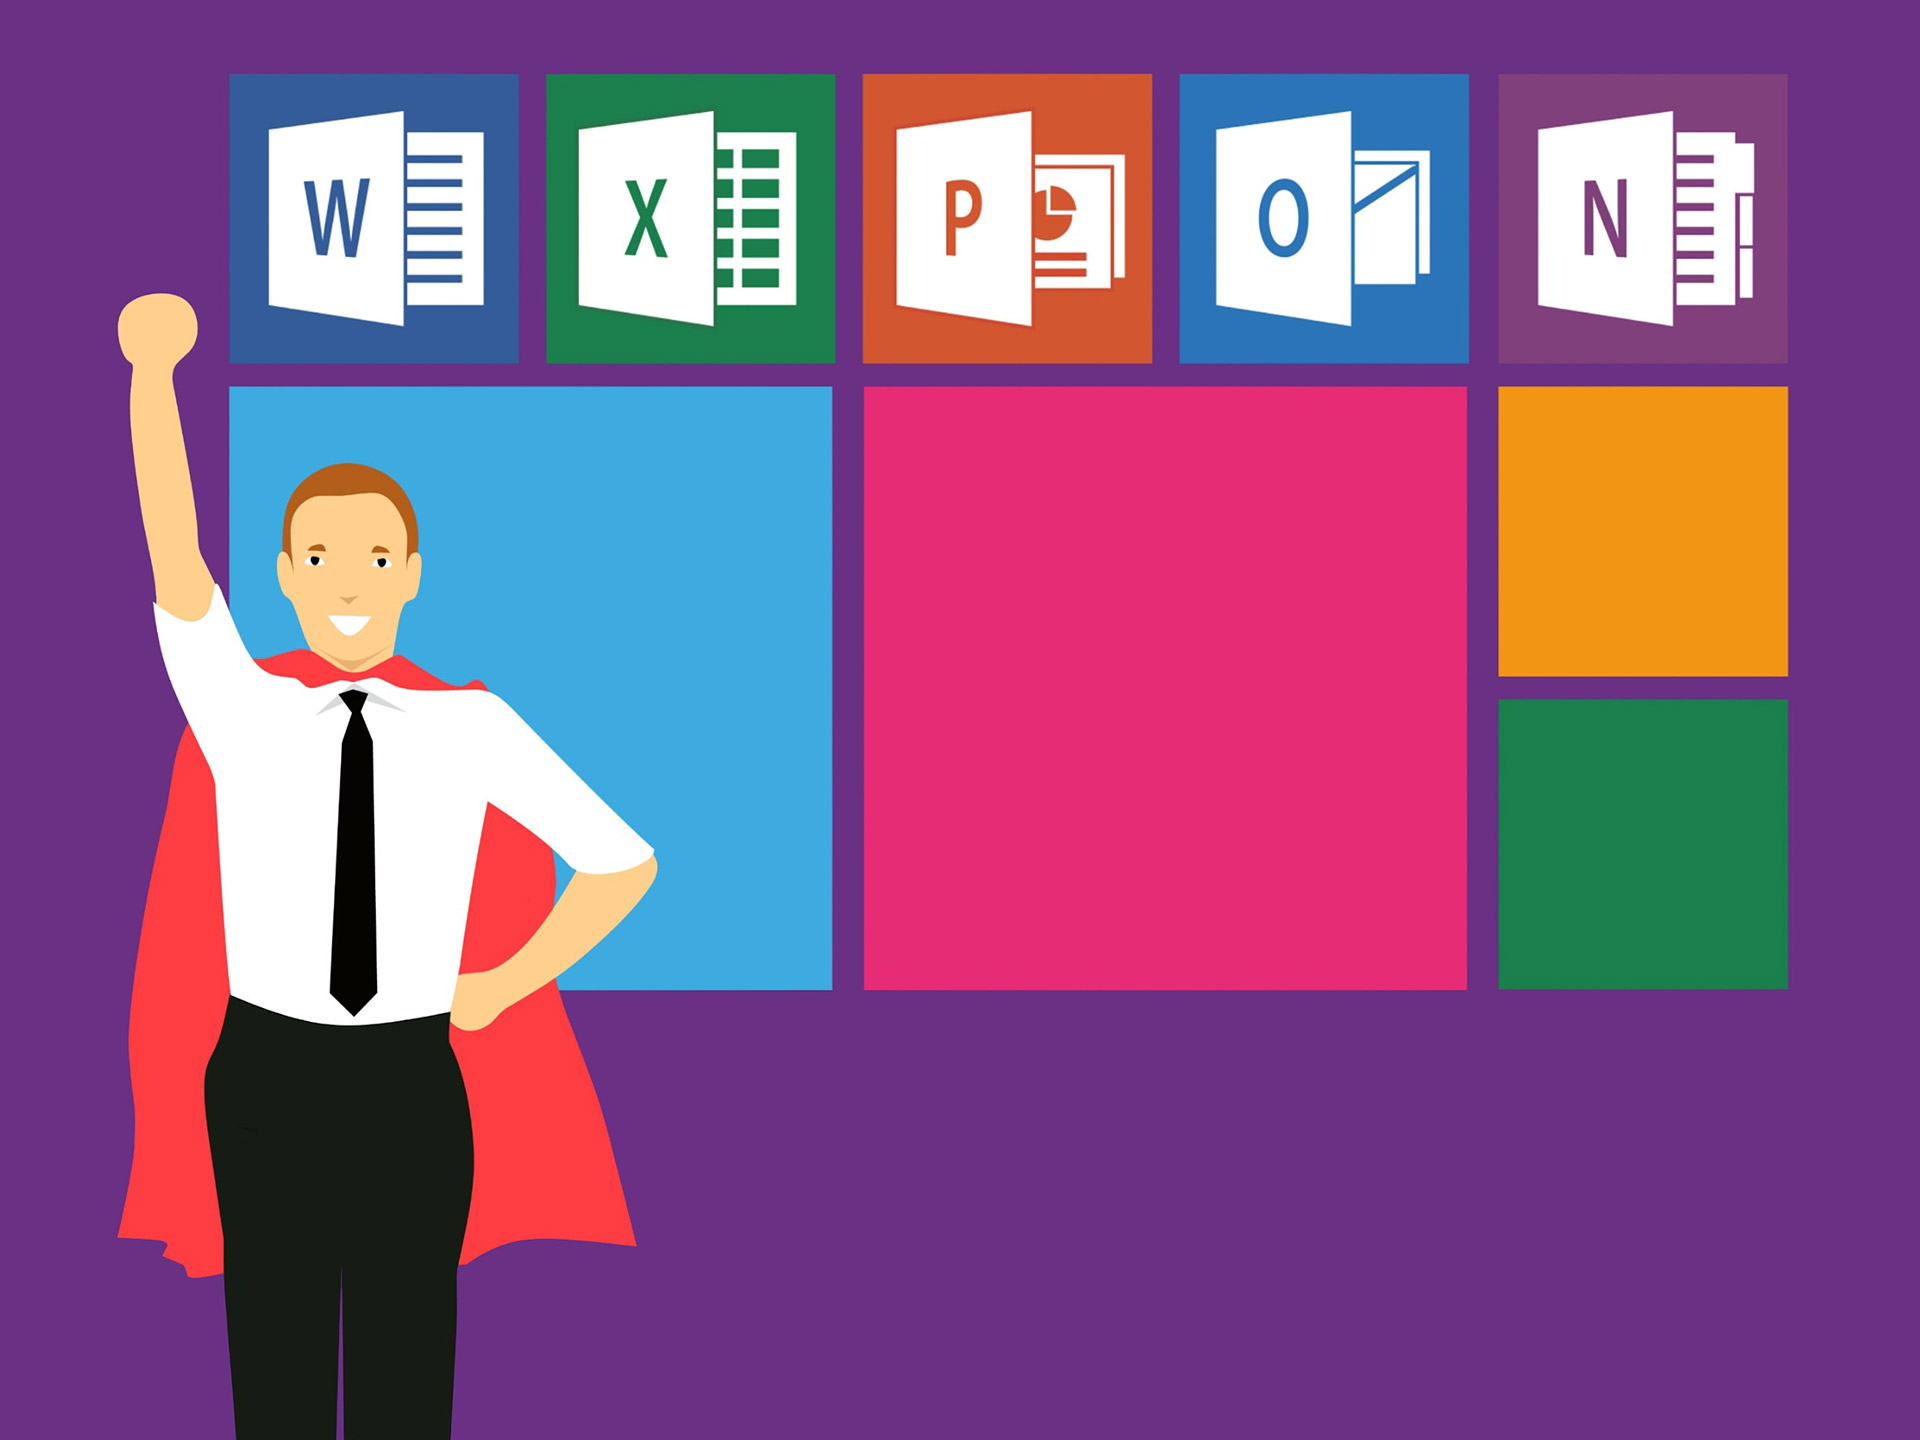 How Does Office 365 Stimulate Business' Growth?